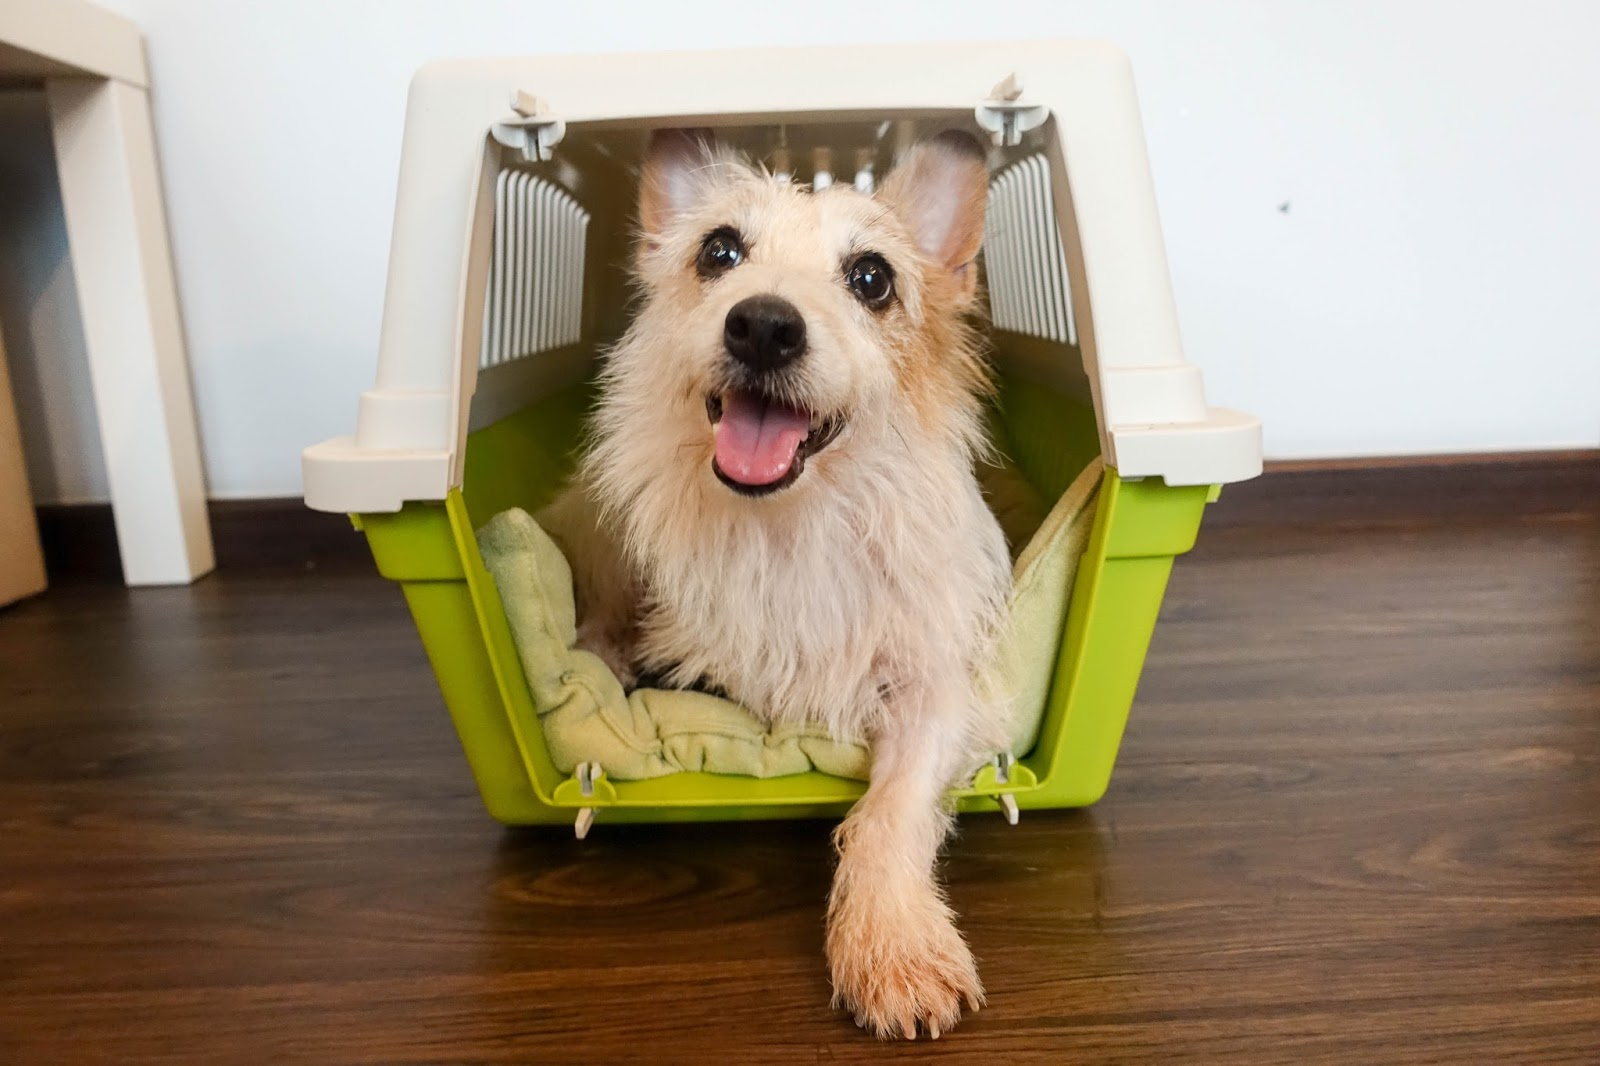 Prepare dog for travelling in crate